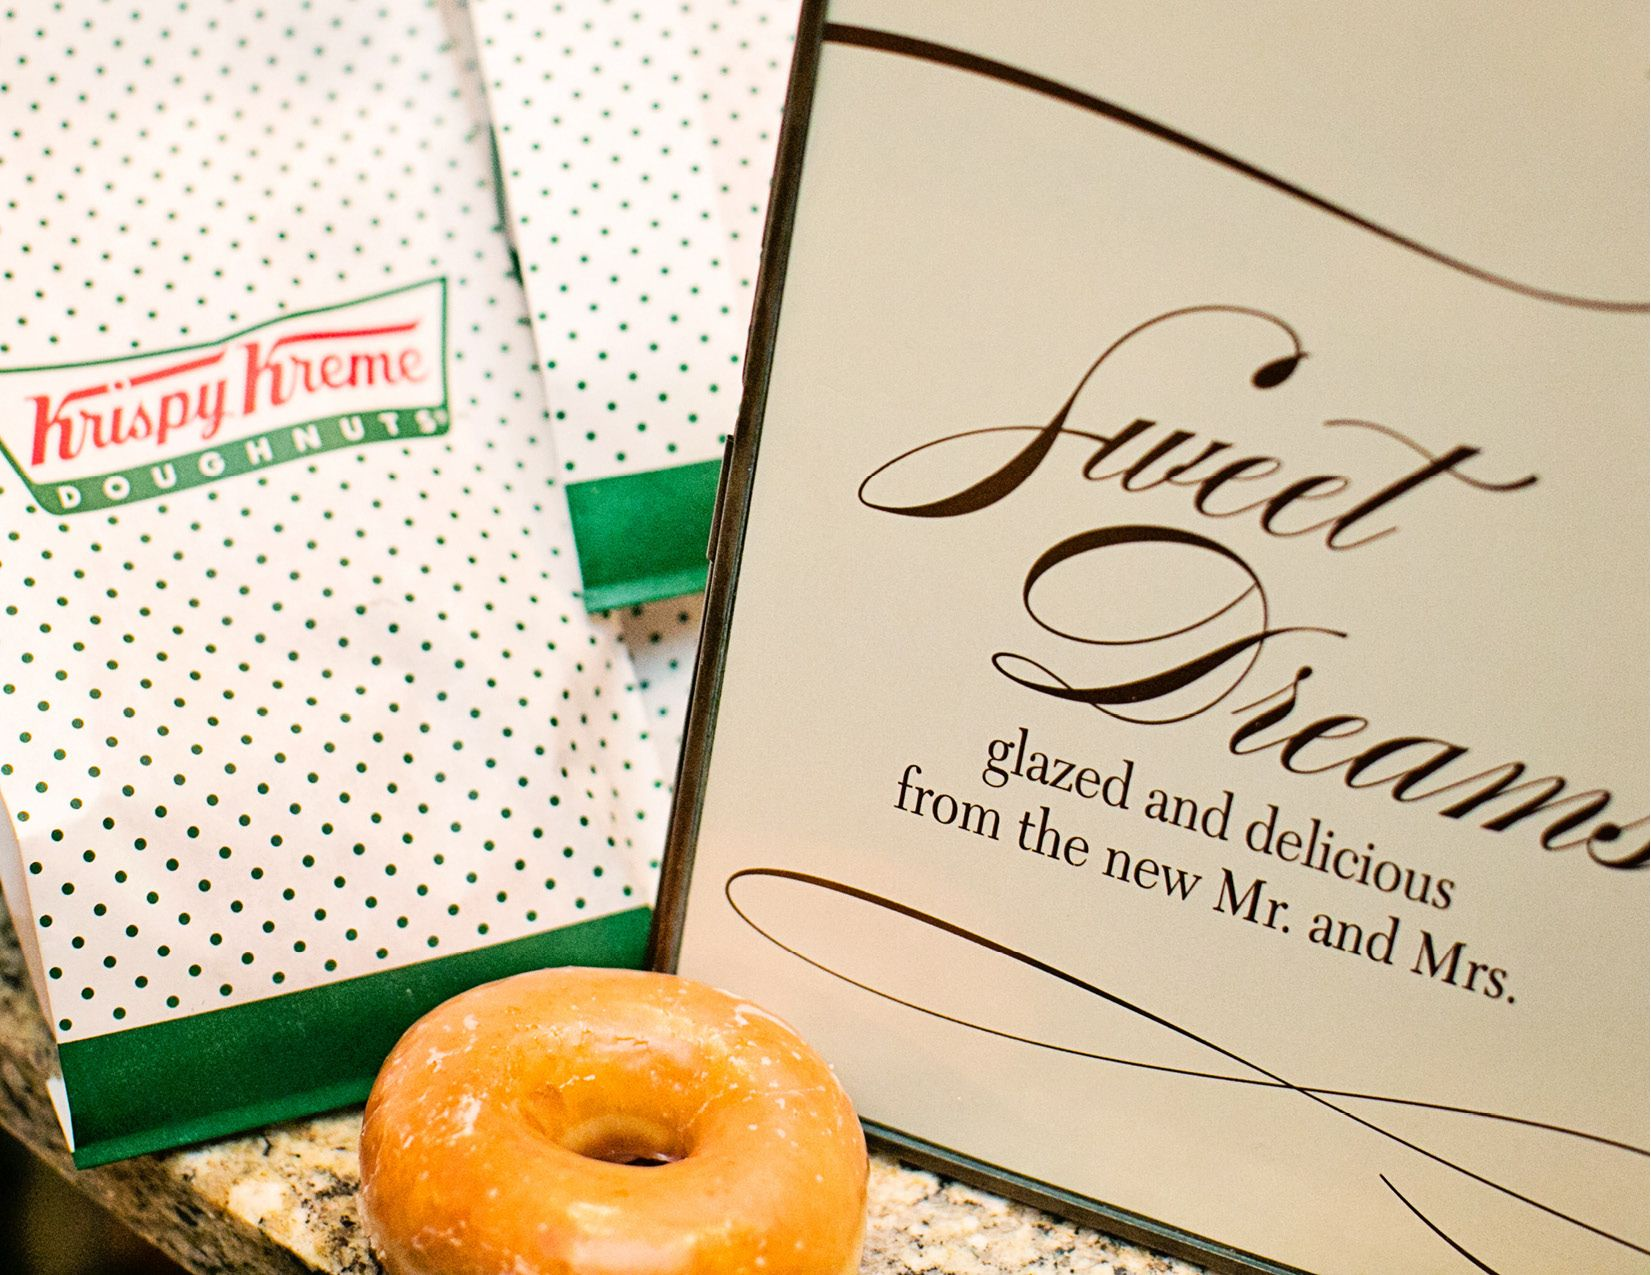 Late night treat from Krispy Kreme at wedding reception #MarieeAmi ...